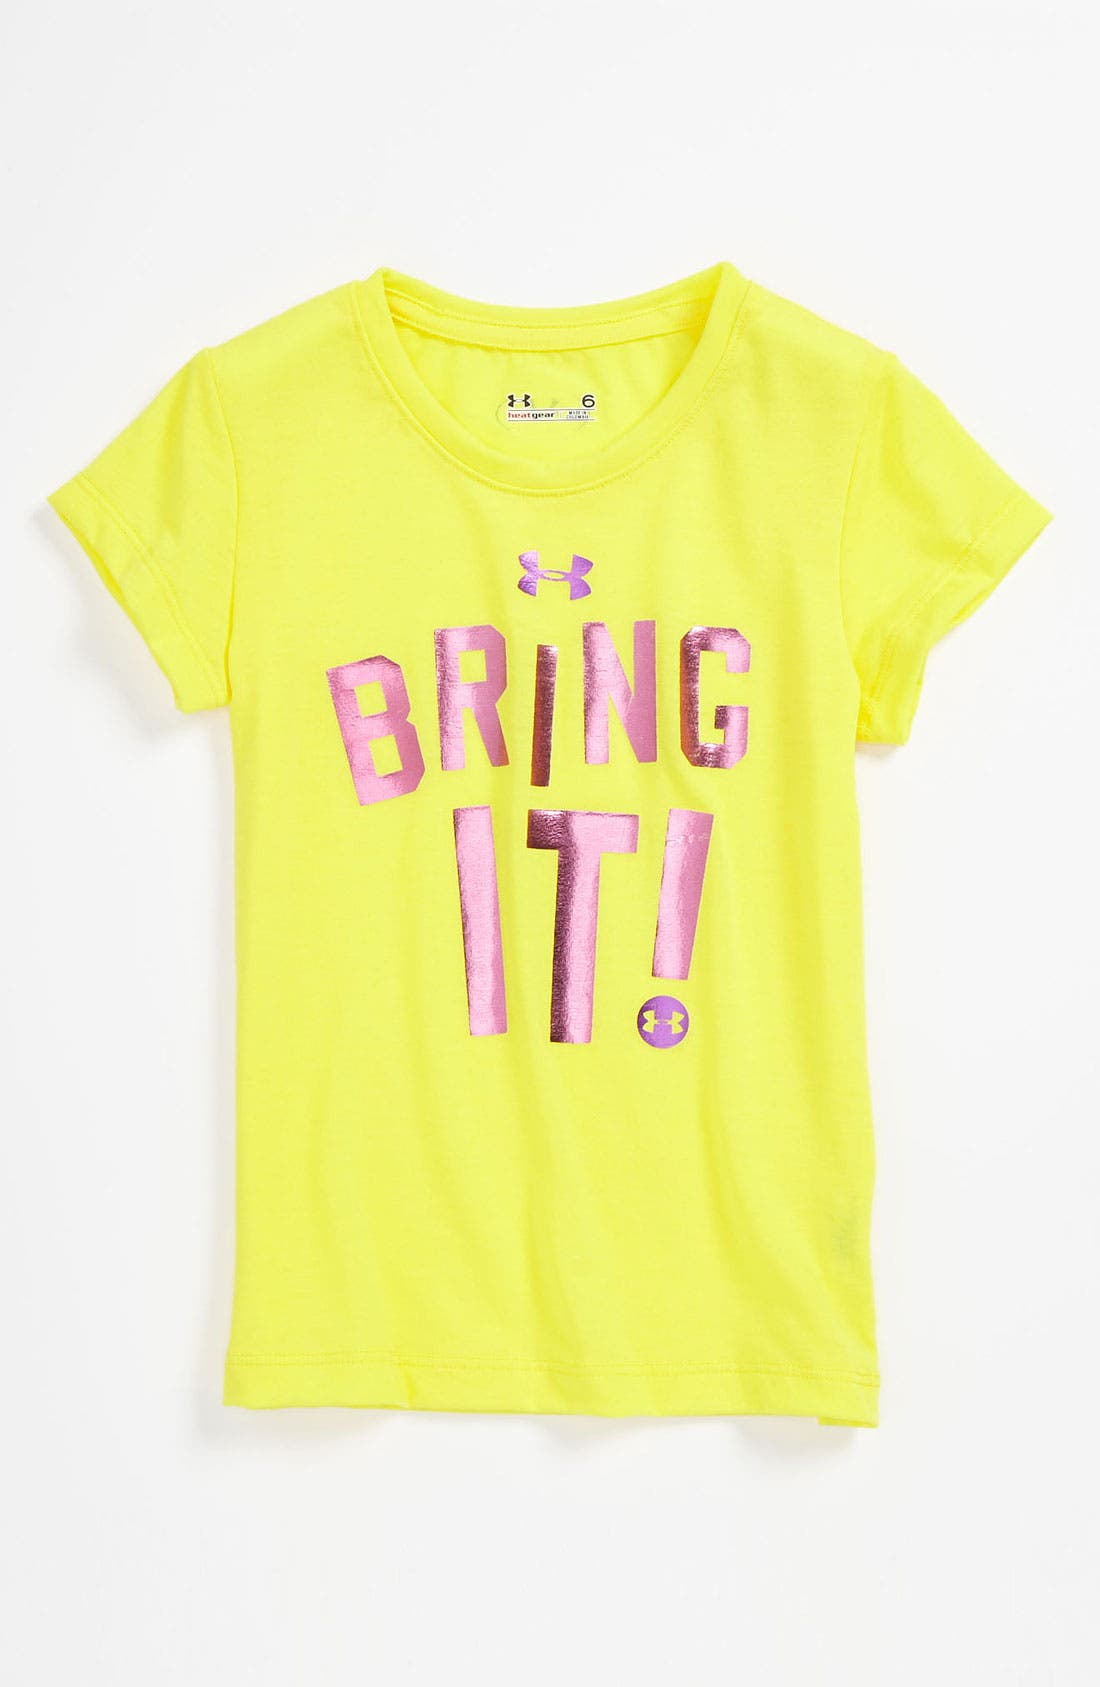 Alternate Image 1 Selected - Under Armour 'Bring It!' Tee (Little Girls)